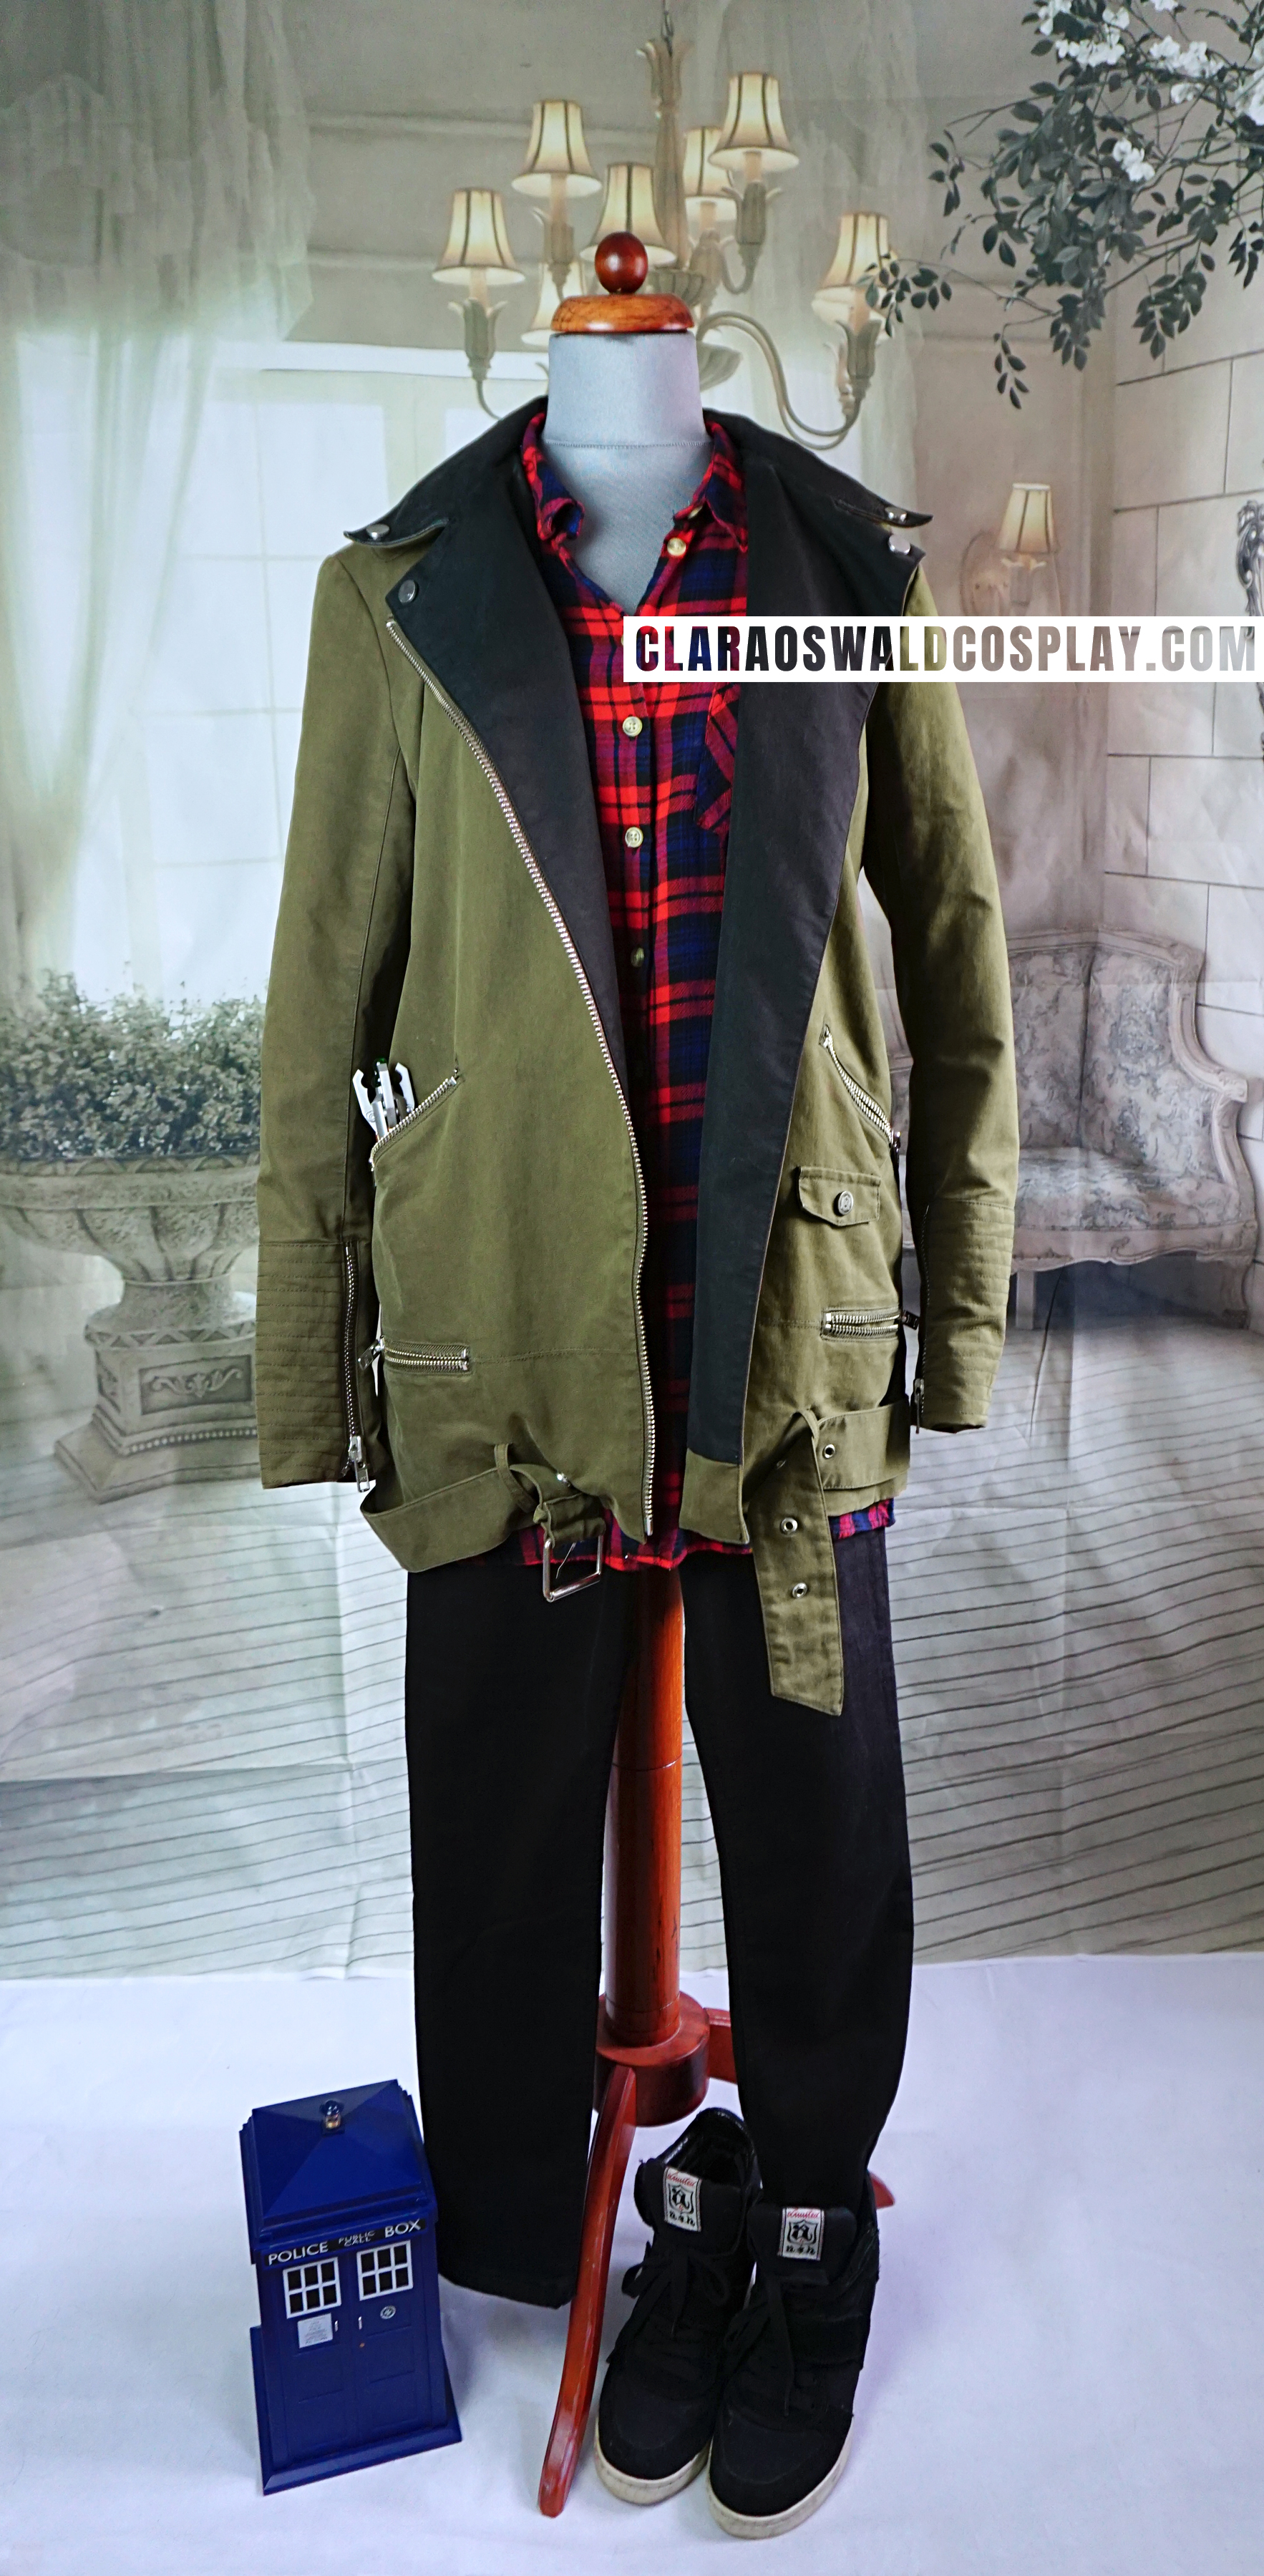 Clara Oswald's complete Flatline outfit featuring: The Kooples Parka, H&M Plaid Shirt and ASH Cool Wedge Trainers